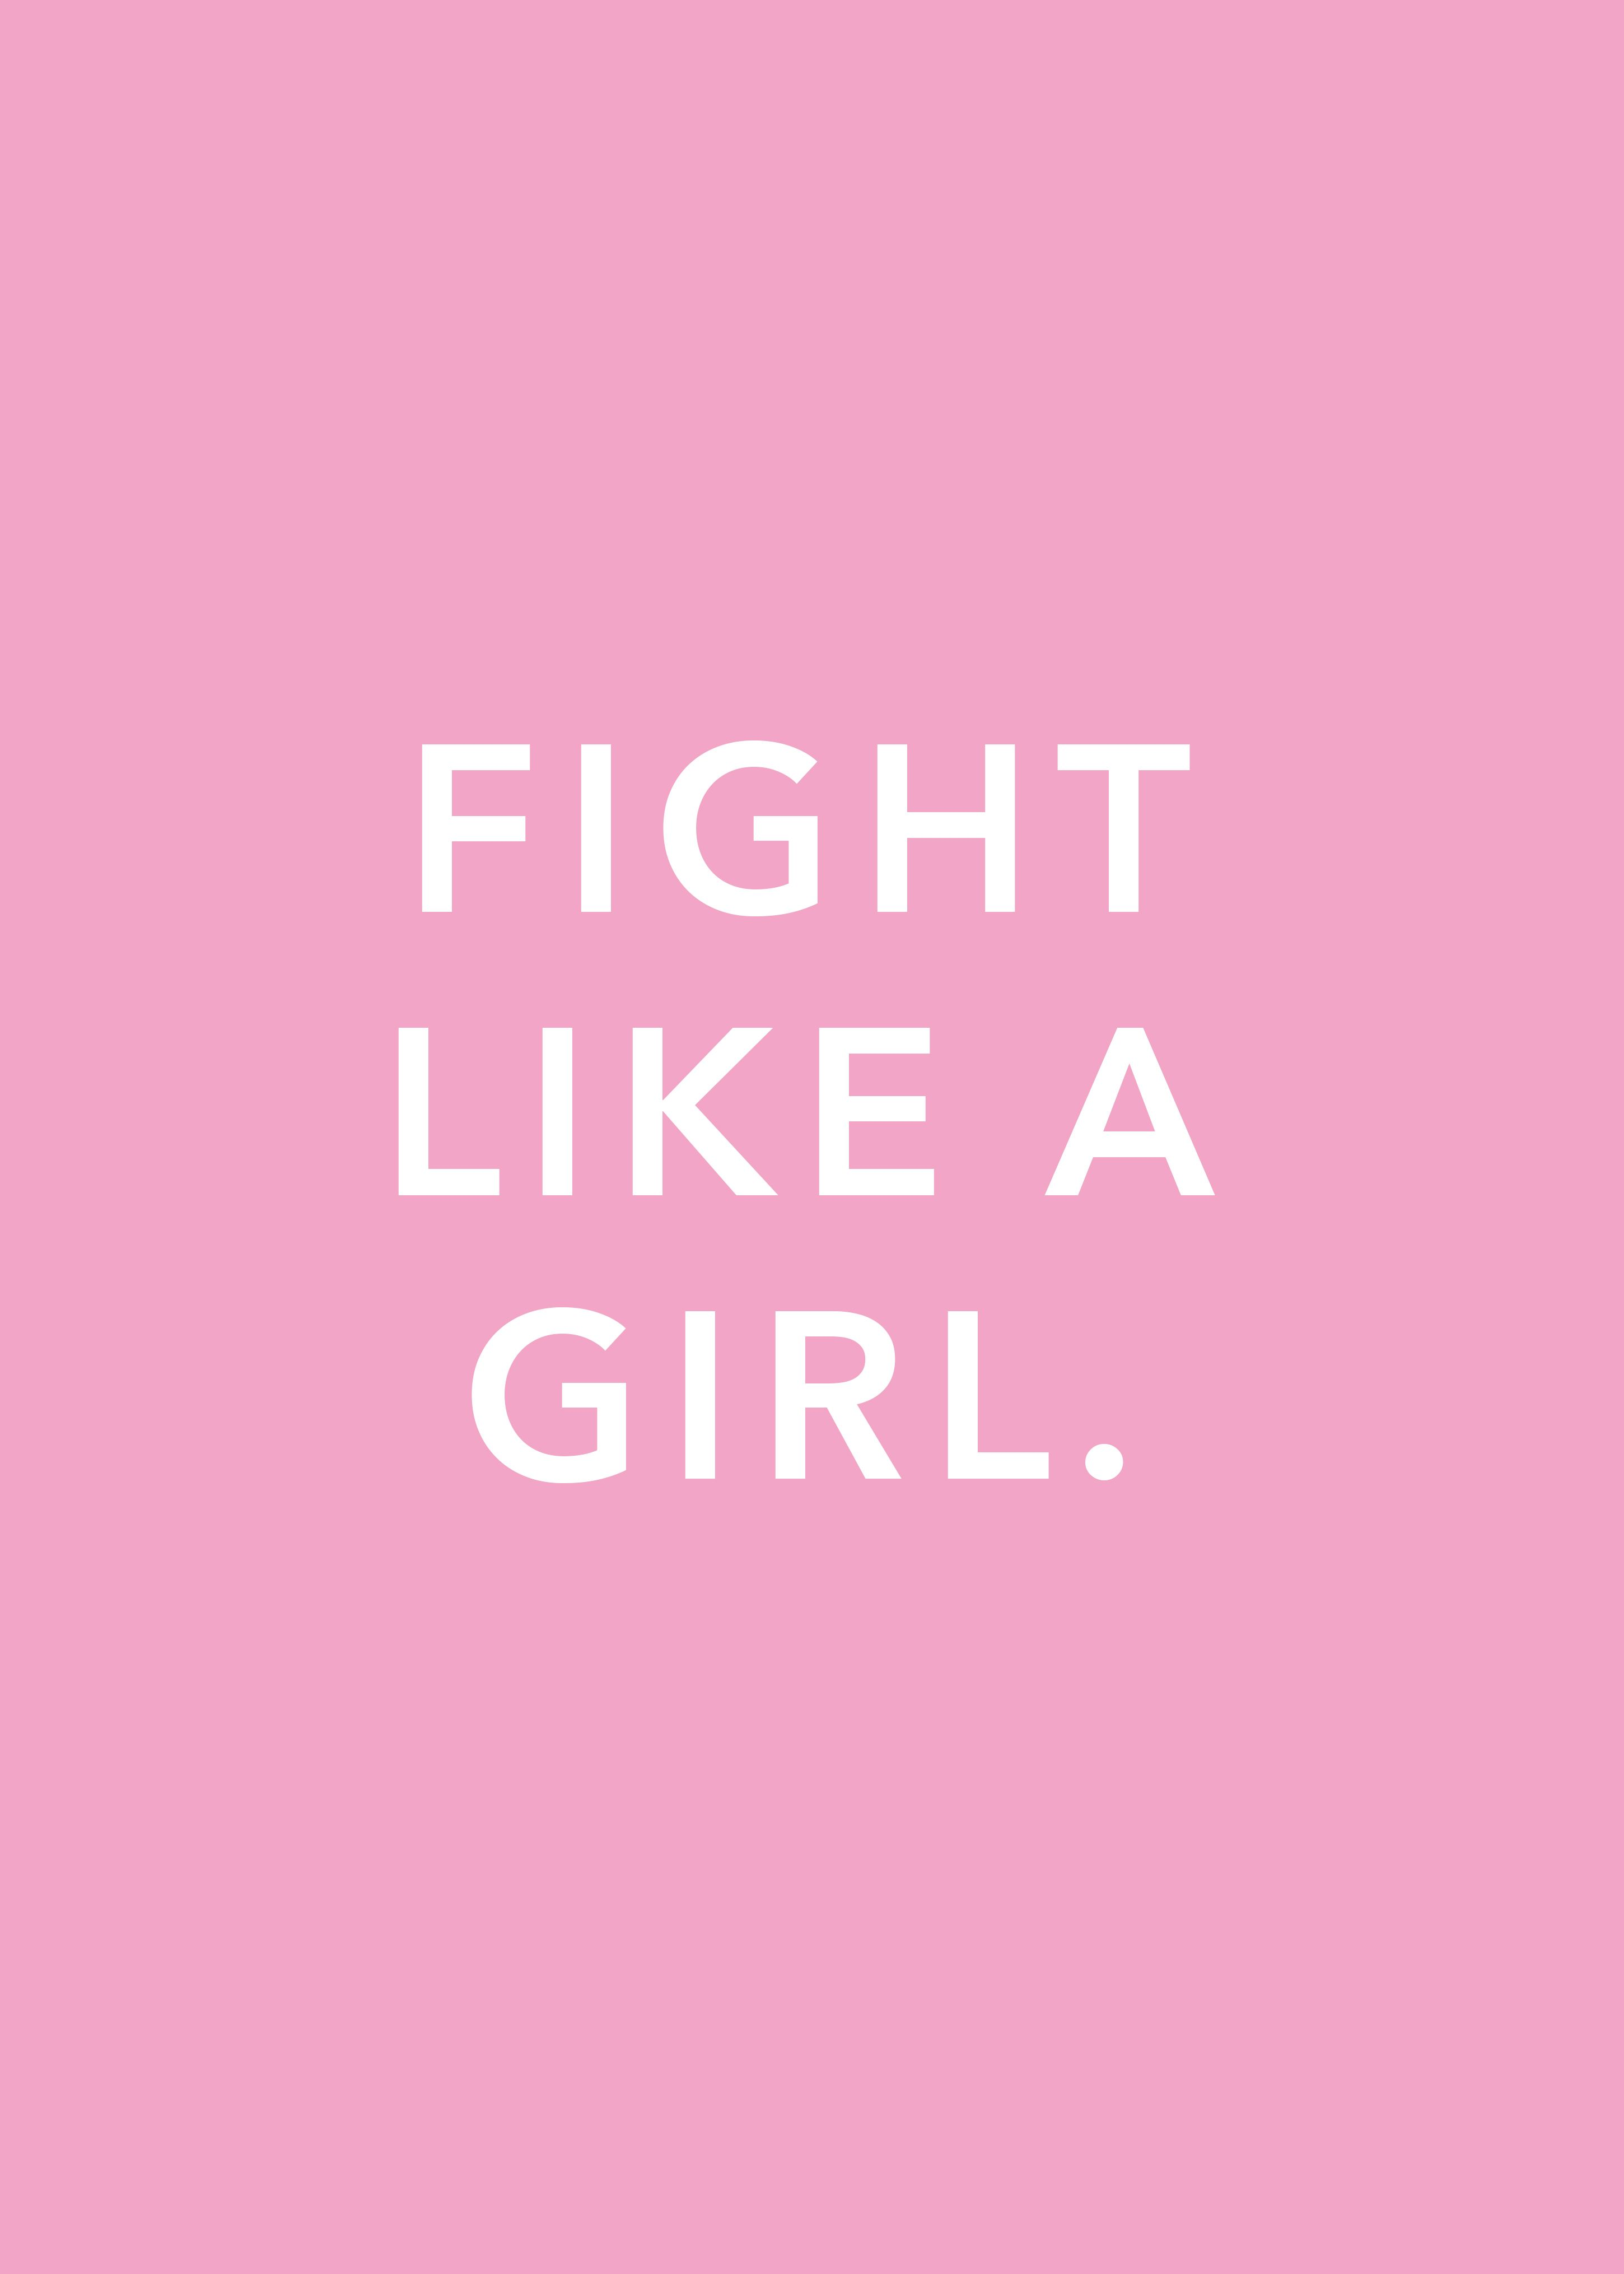 'Fight Like A Girl' Poster Print by Weltenraser  | Displate